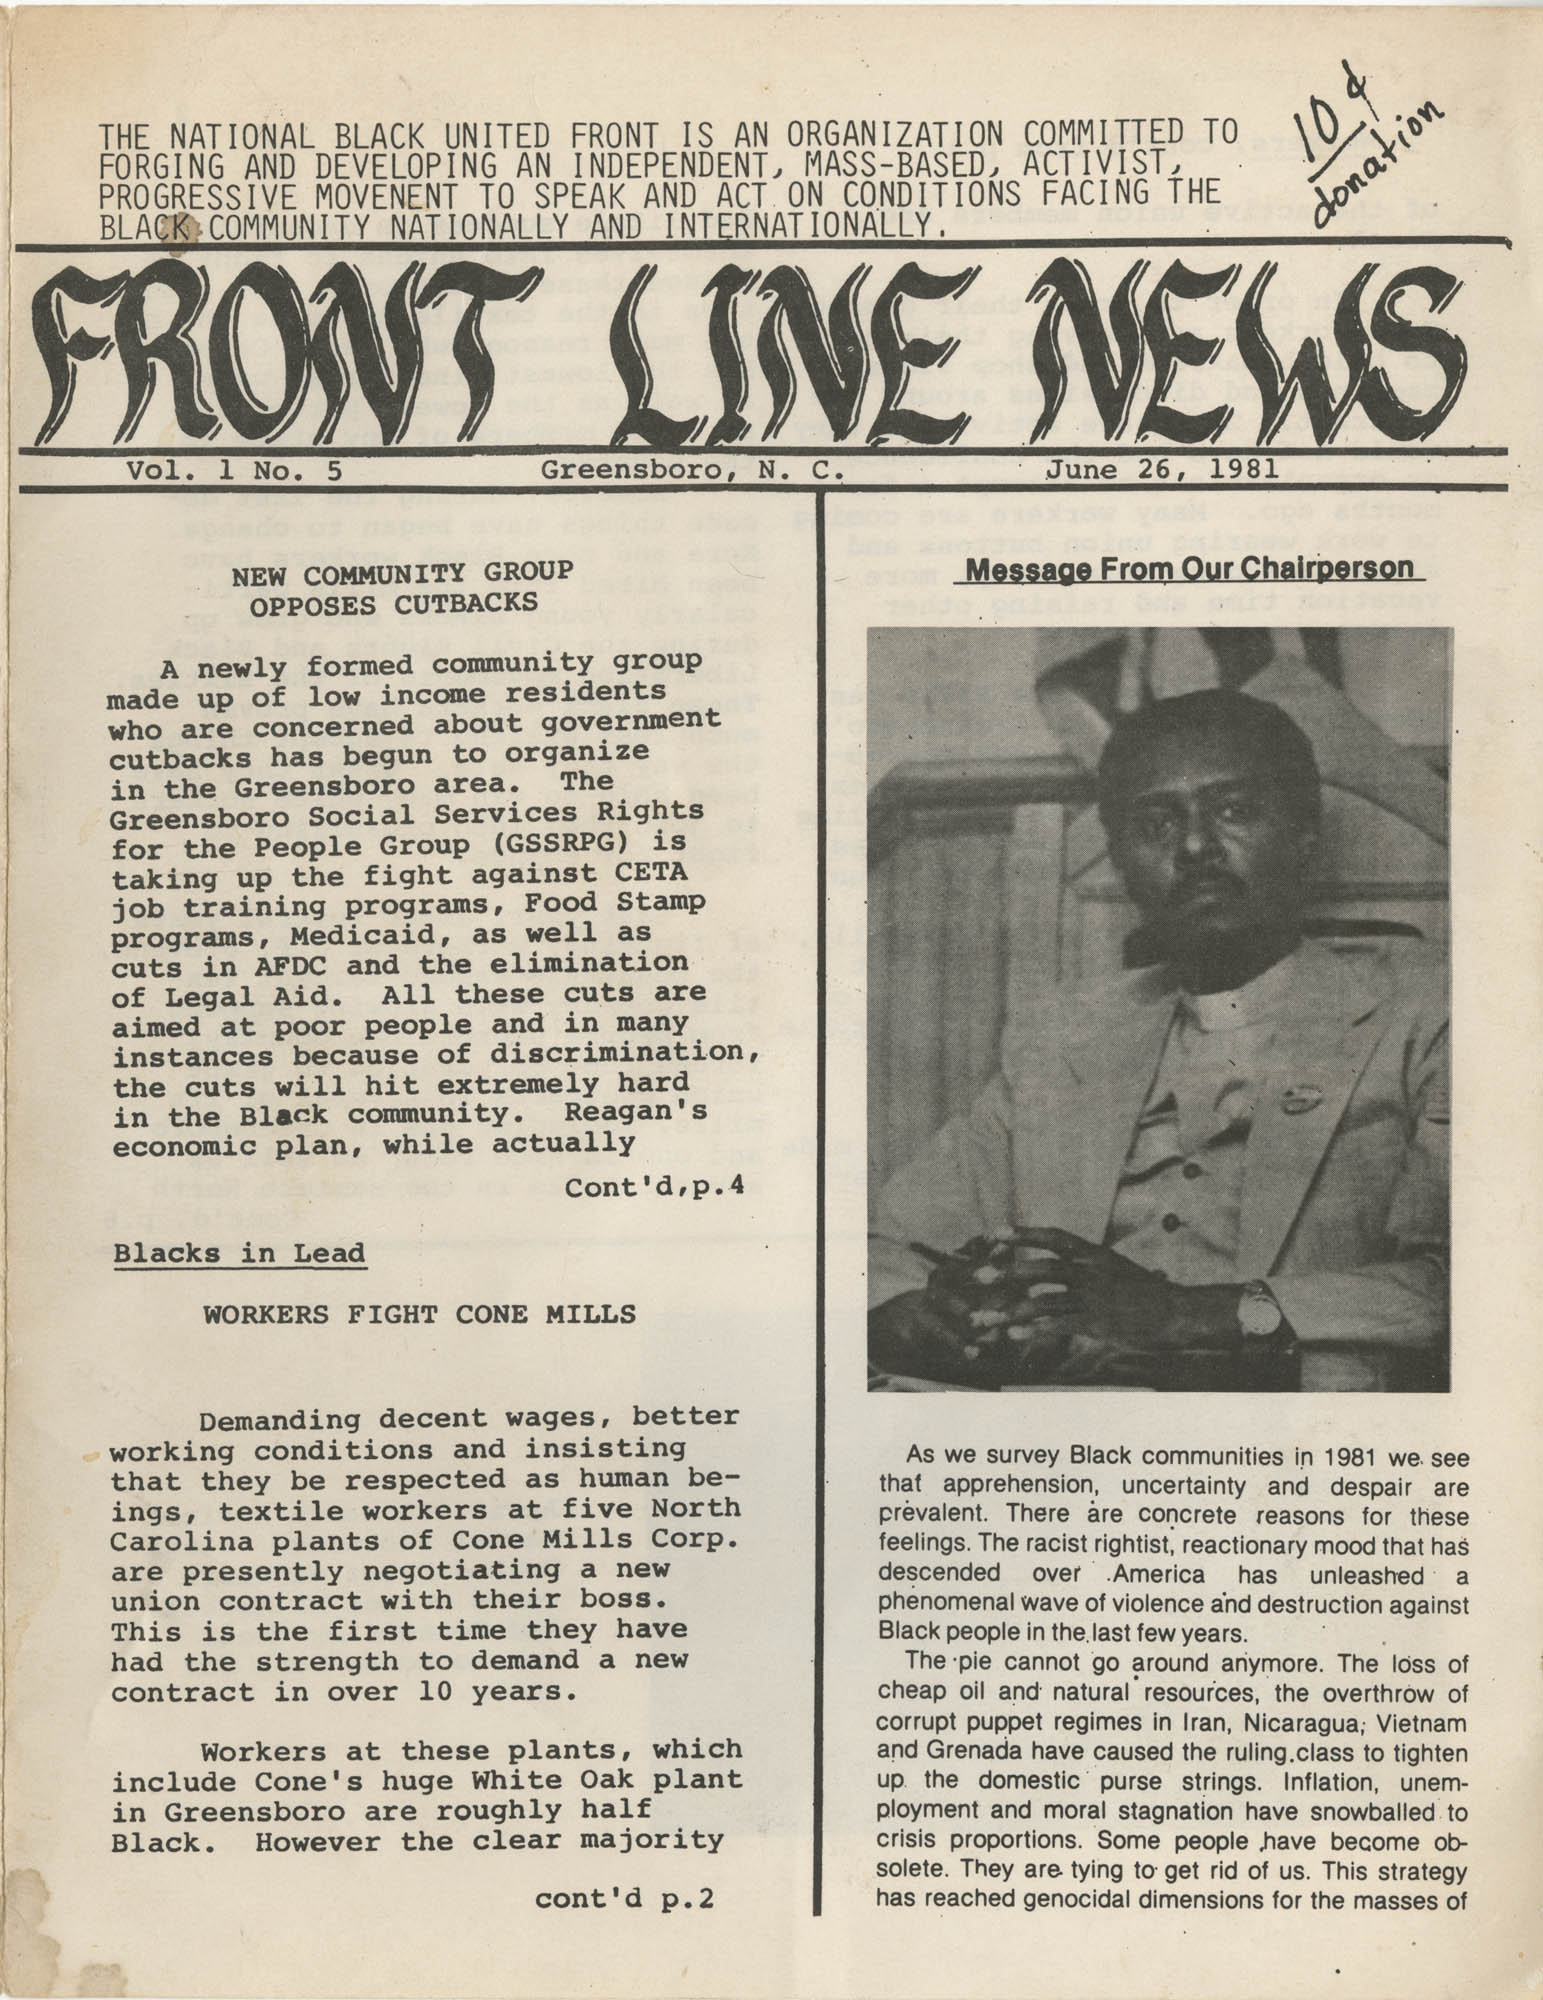 Front Line News, Vol. 1, No. 5